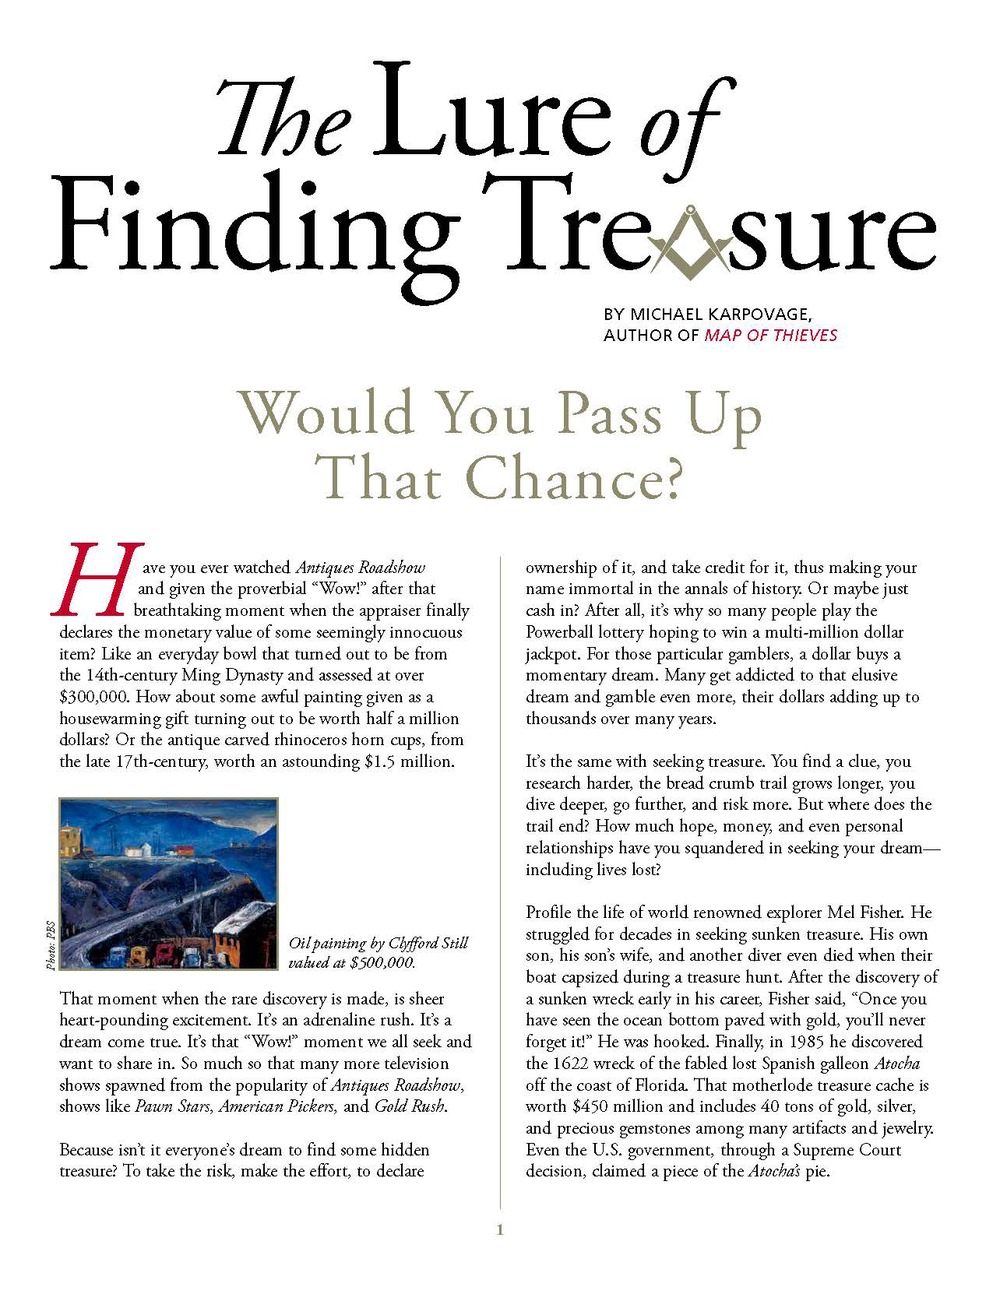 Finding-Treasure-article_Page_1.jpg